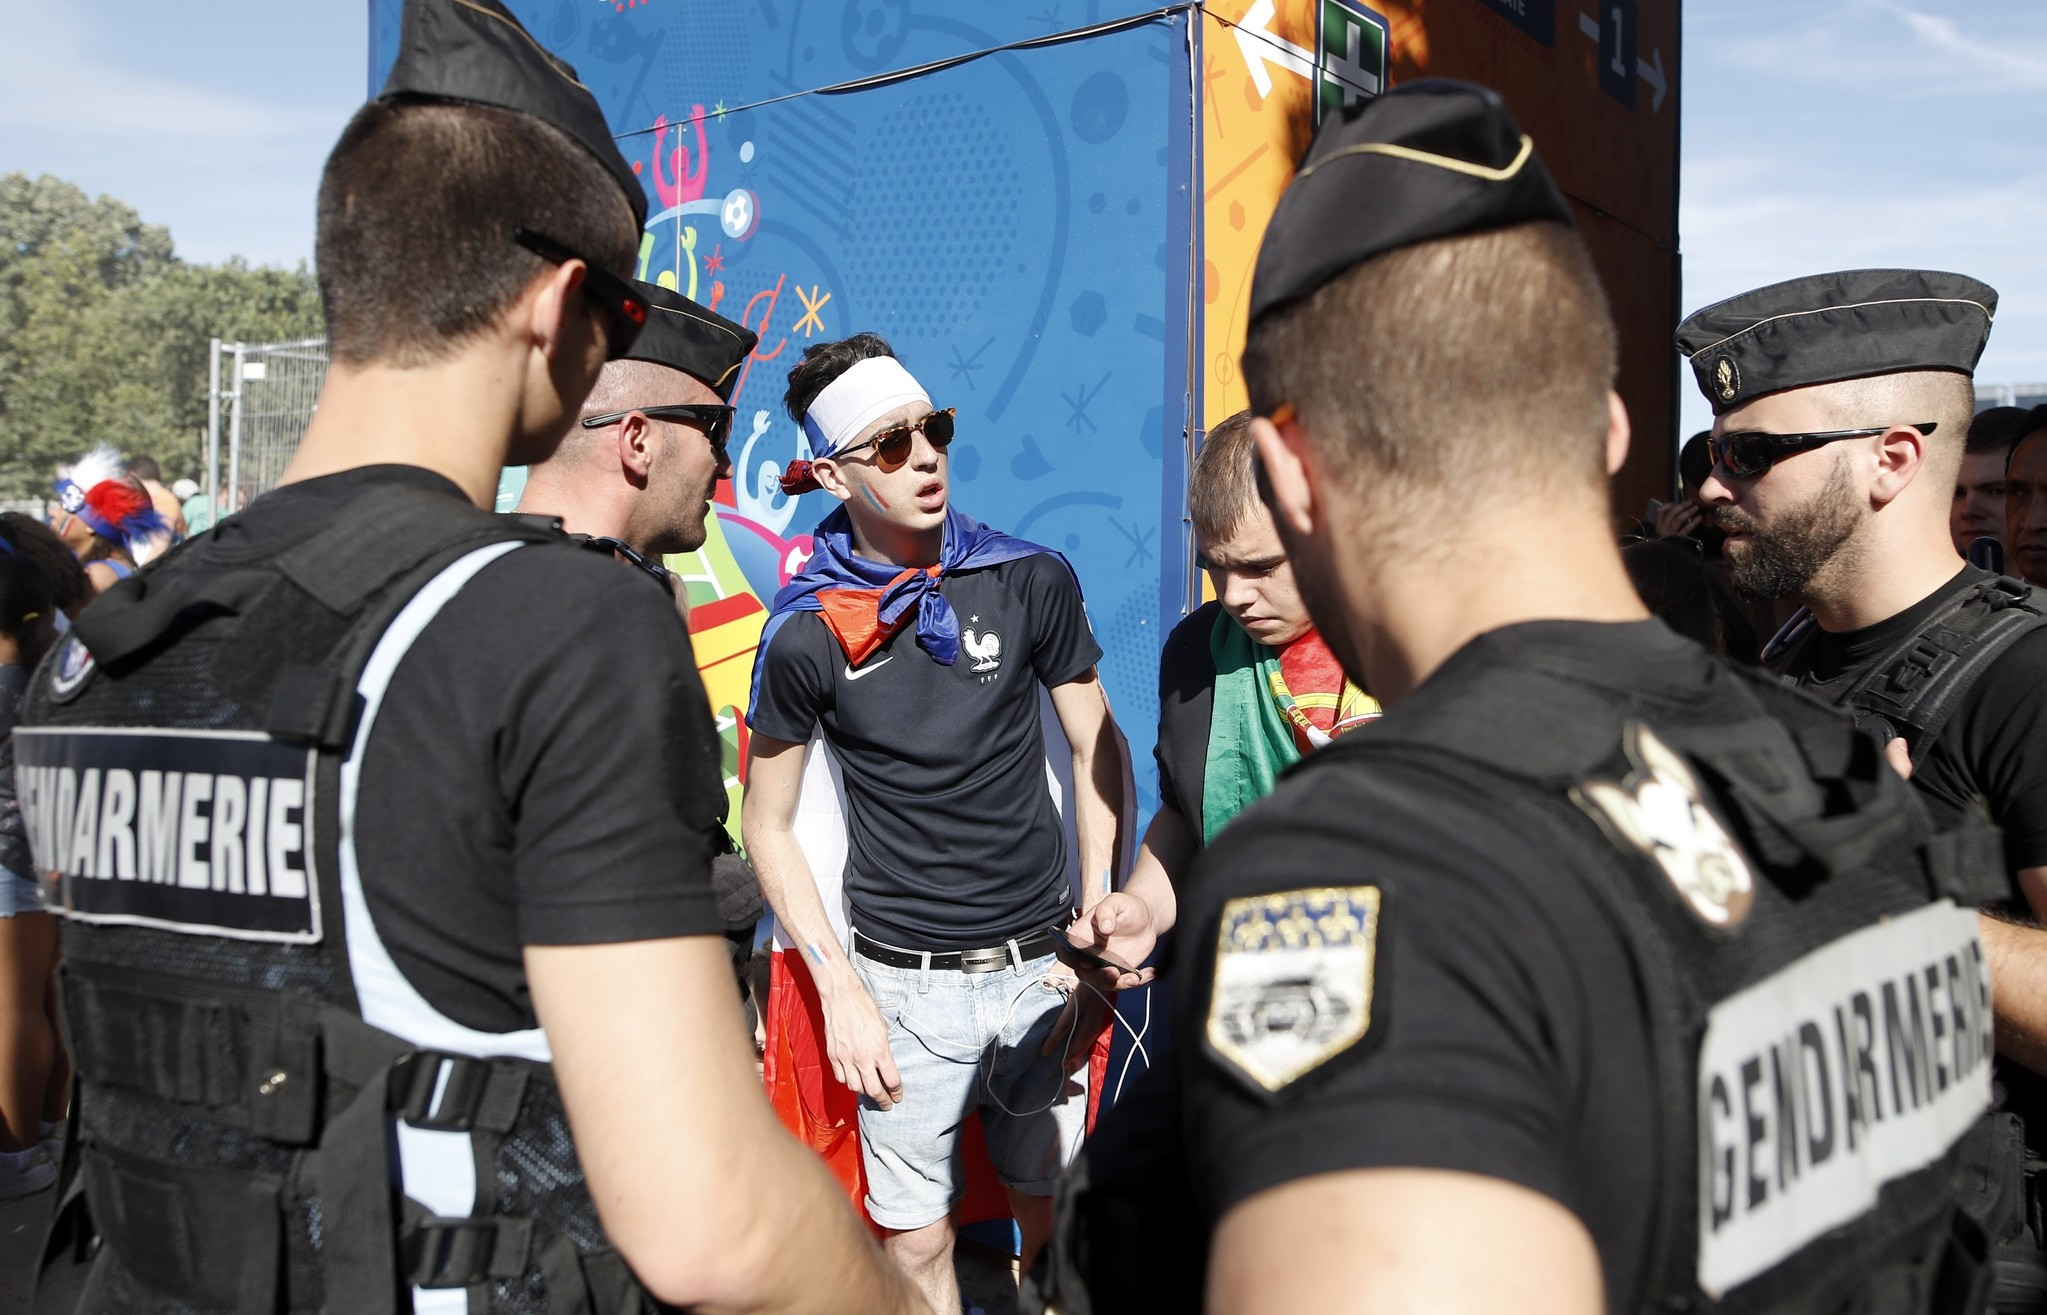 French gendarmes check supporters arriving at the Paris fan zone before the Euro 2016 final soccer match between Portugal and France, Sunday, July 10, 2016 in Paris. (AP Photo)